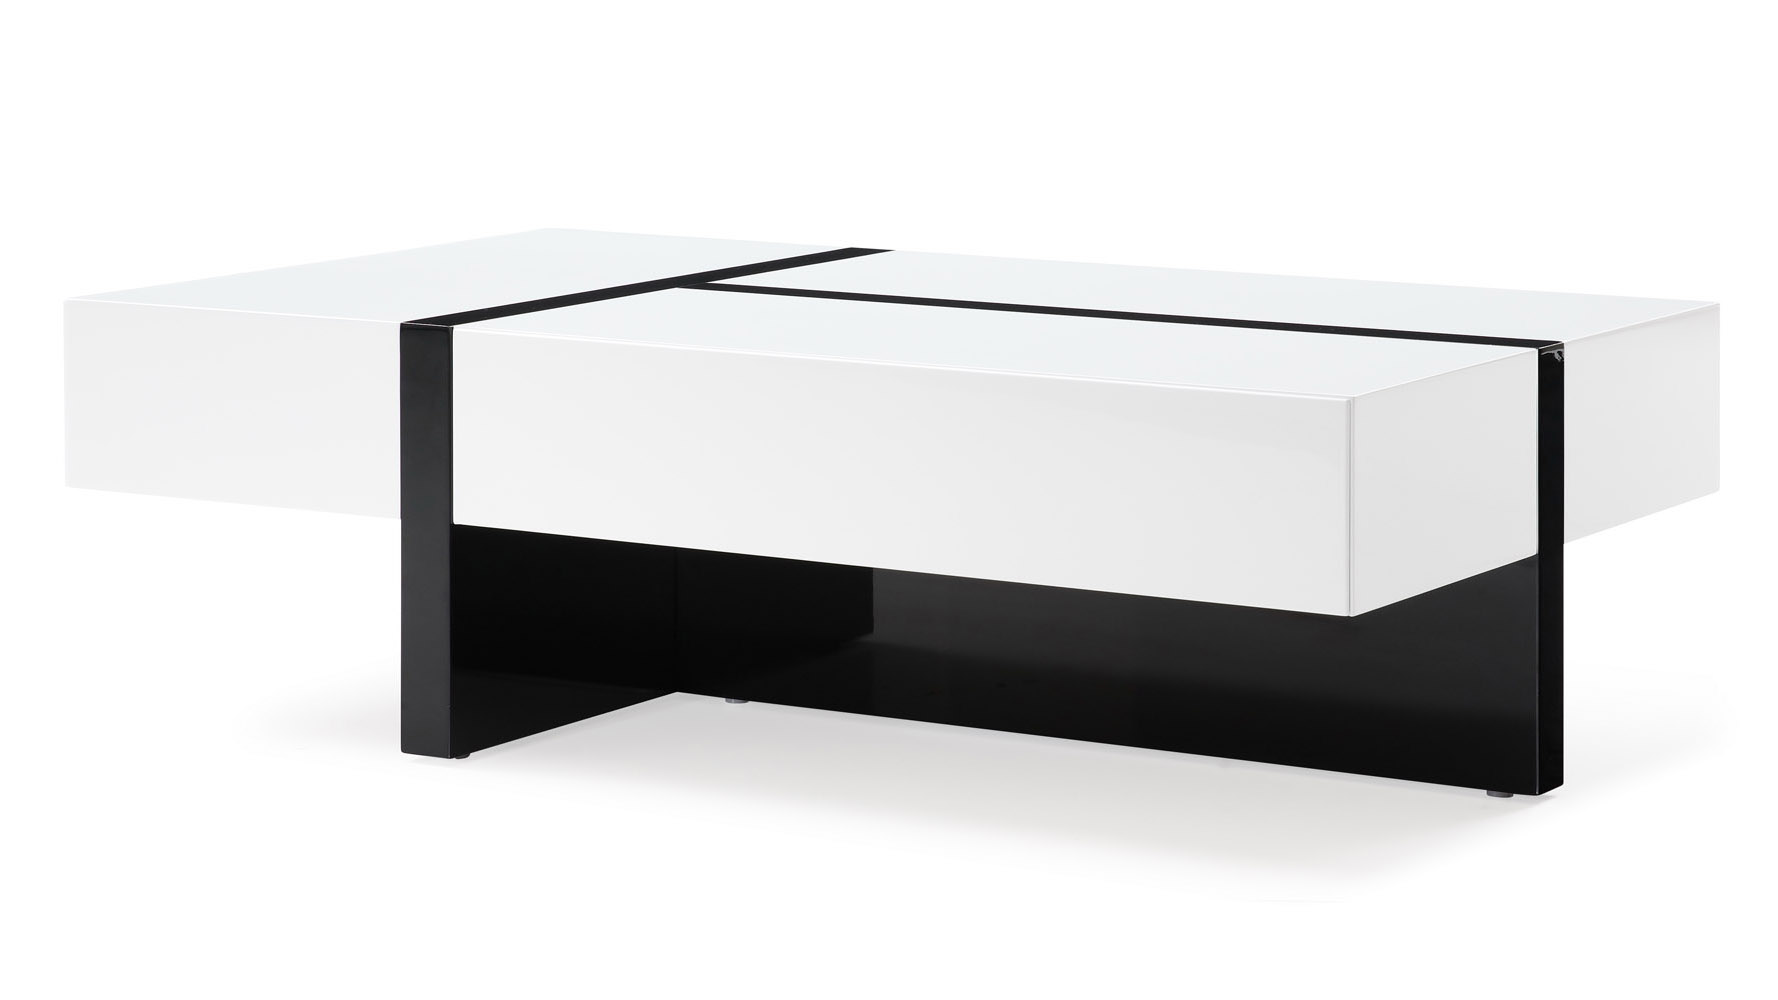 Astonishing Mcintosh Rectangle Coffee Table White And Black Gmtry Best Dining Table And Chair Ideas Images Gmtryco